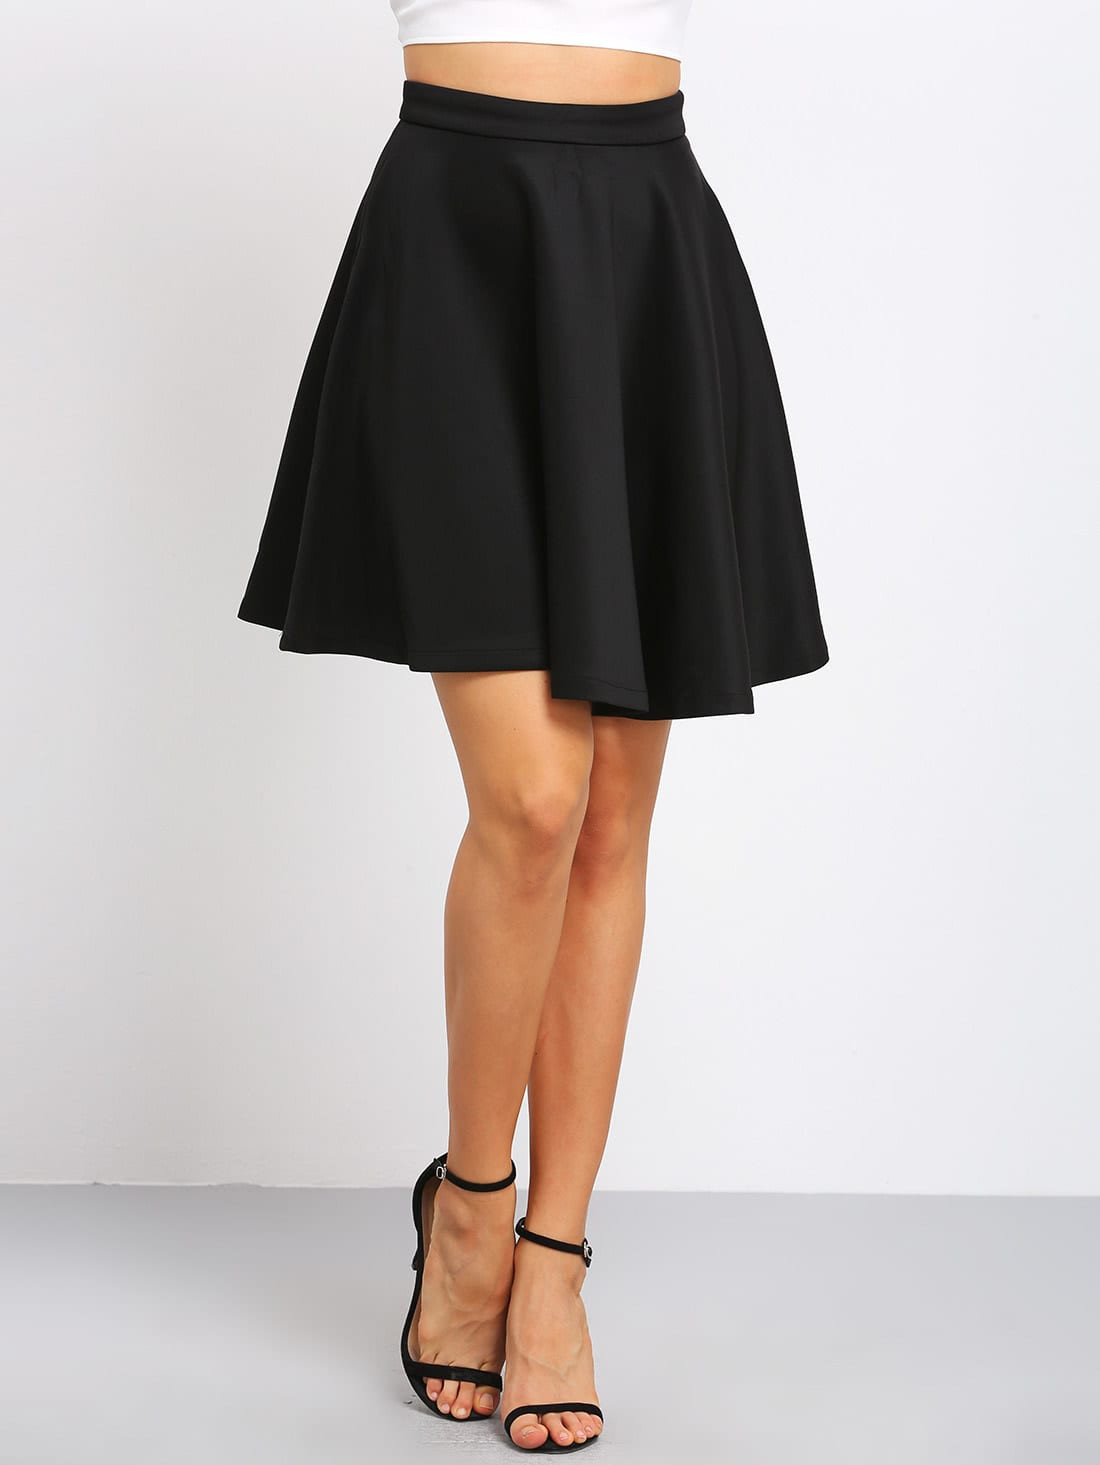 Black High Waist Flare Skirt